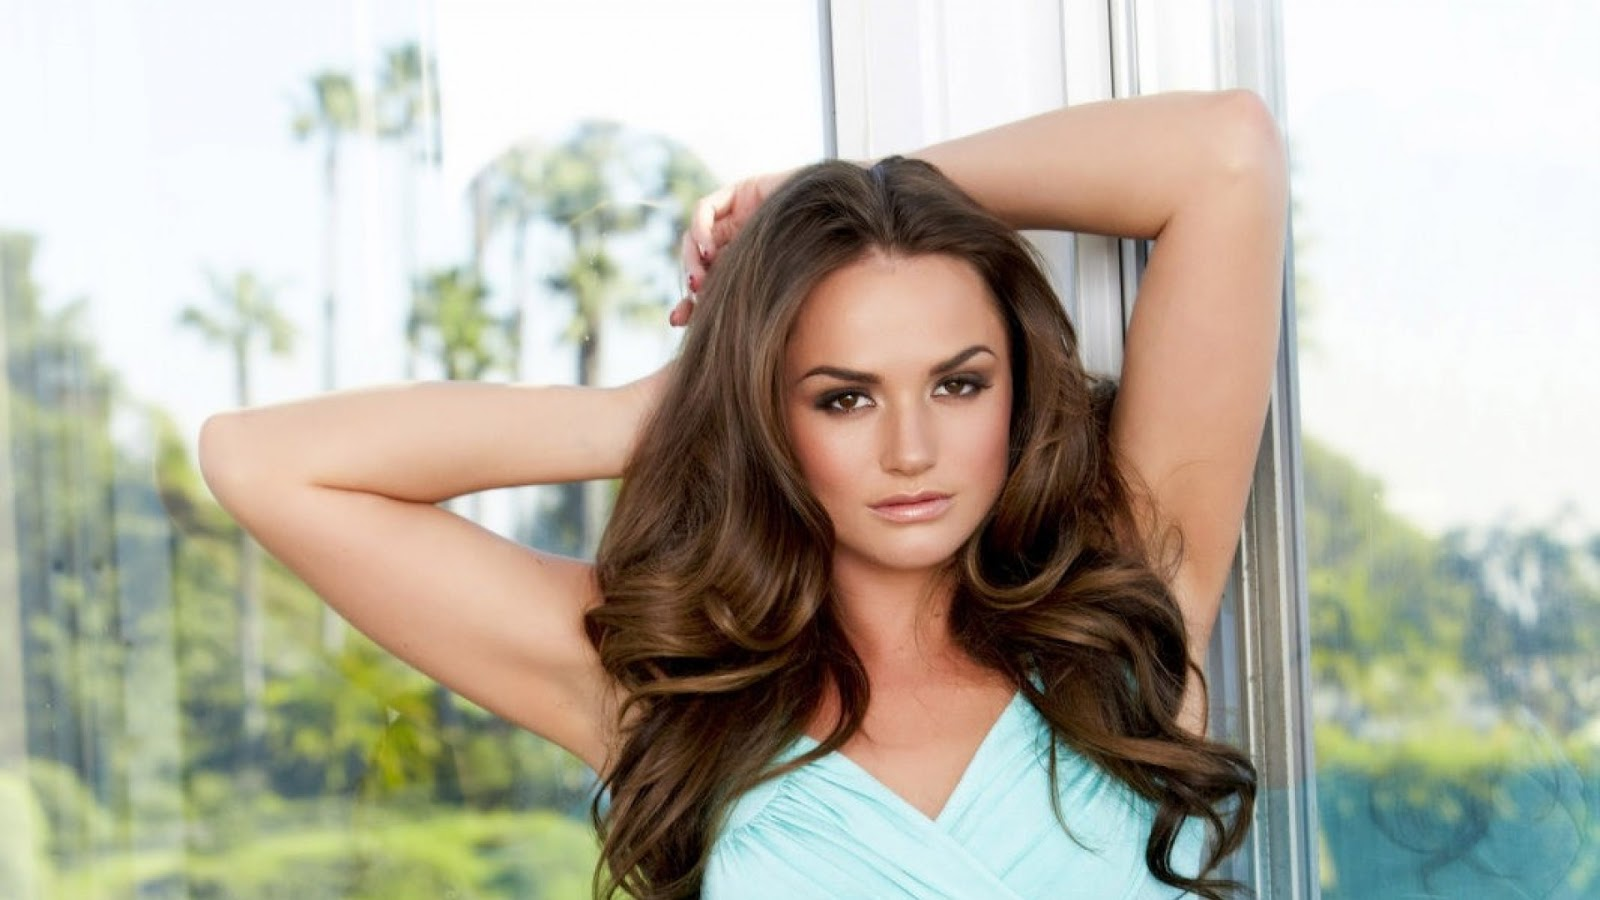 tori black wallpaper hd